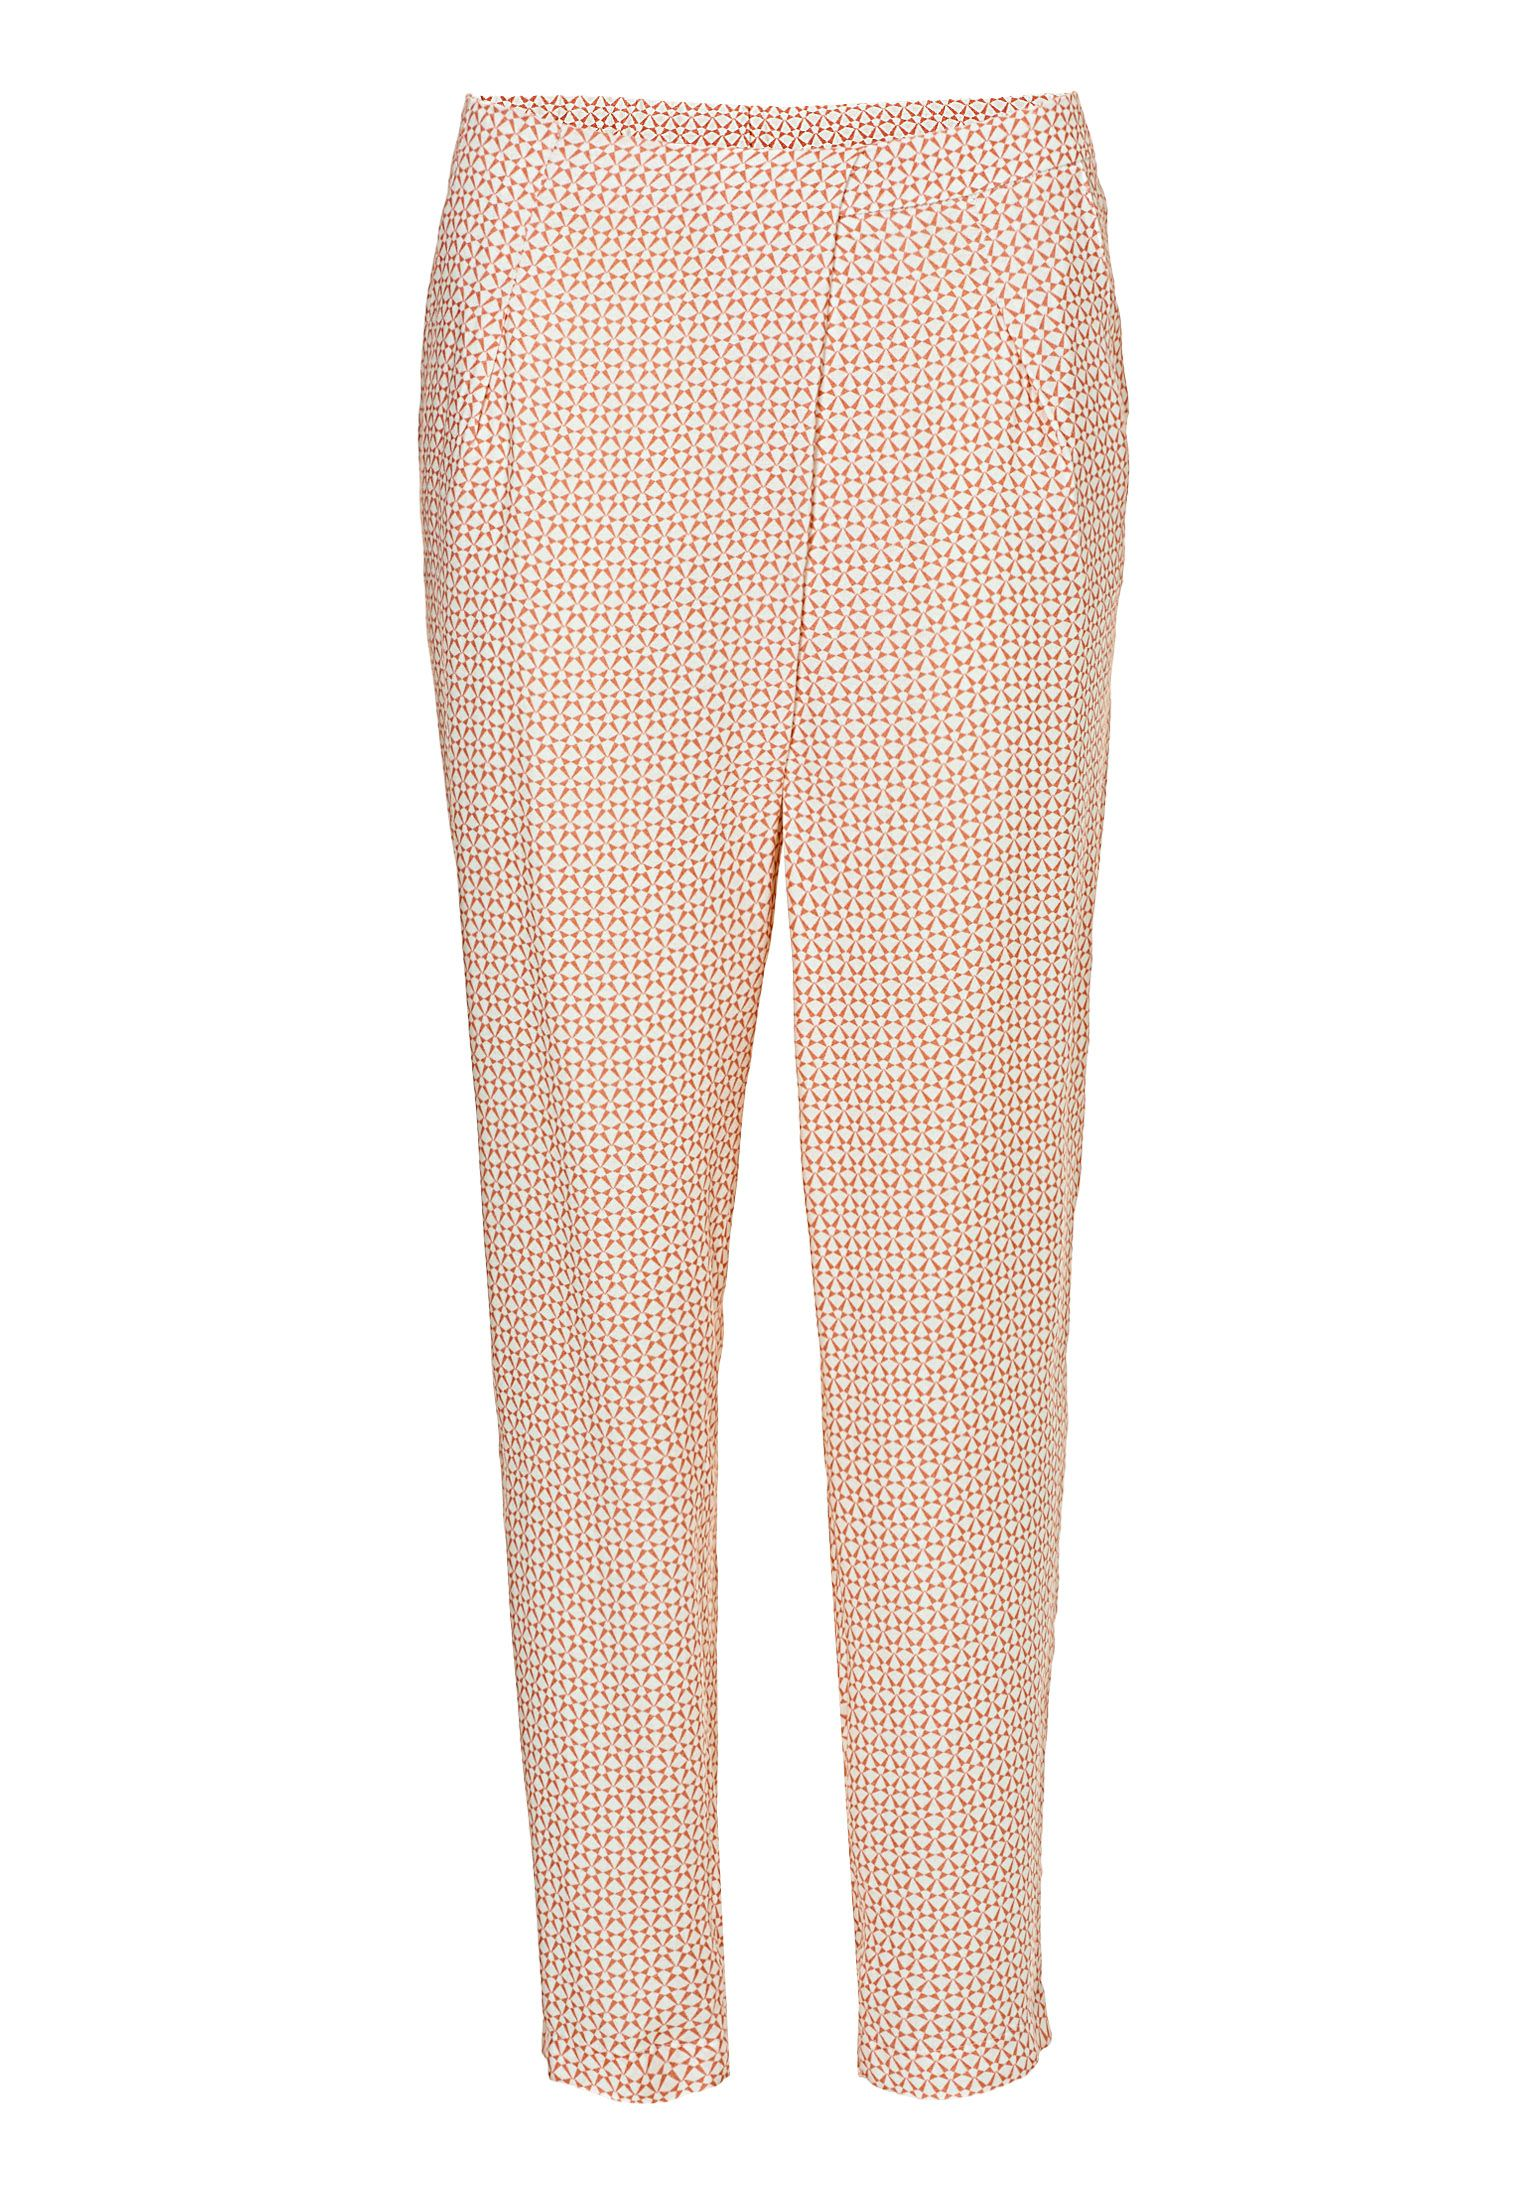 Betty & Co. Printed trousers, Pink